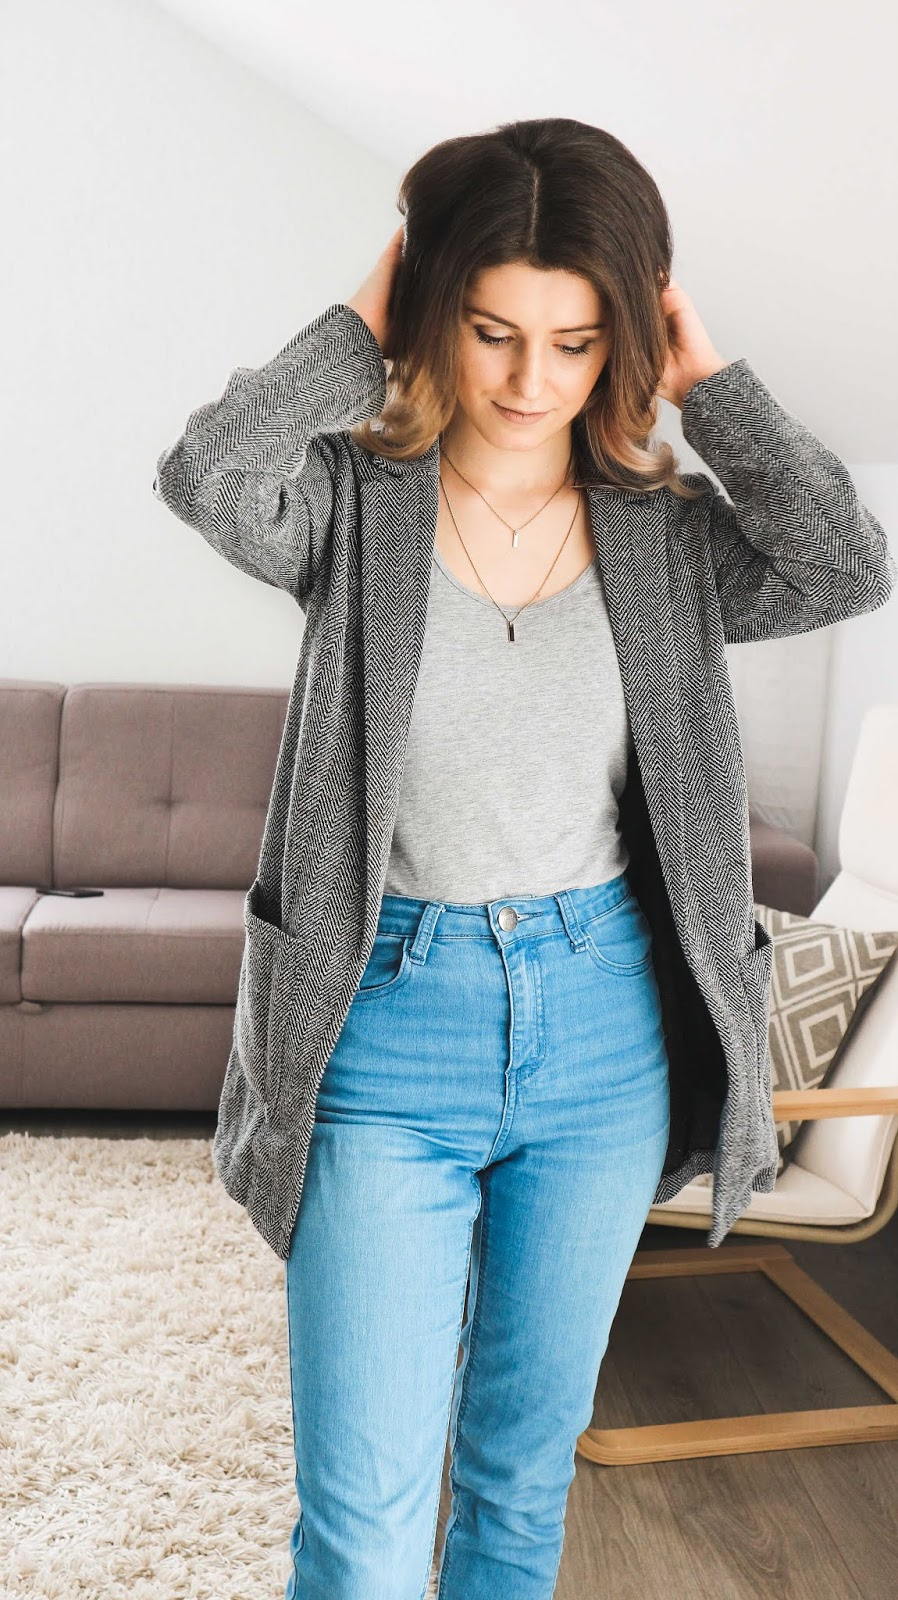 grey day outfit inspiration style